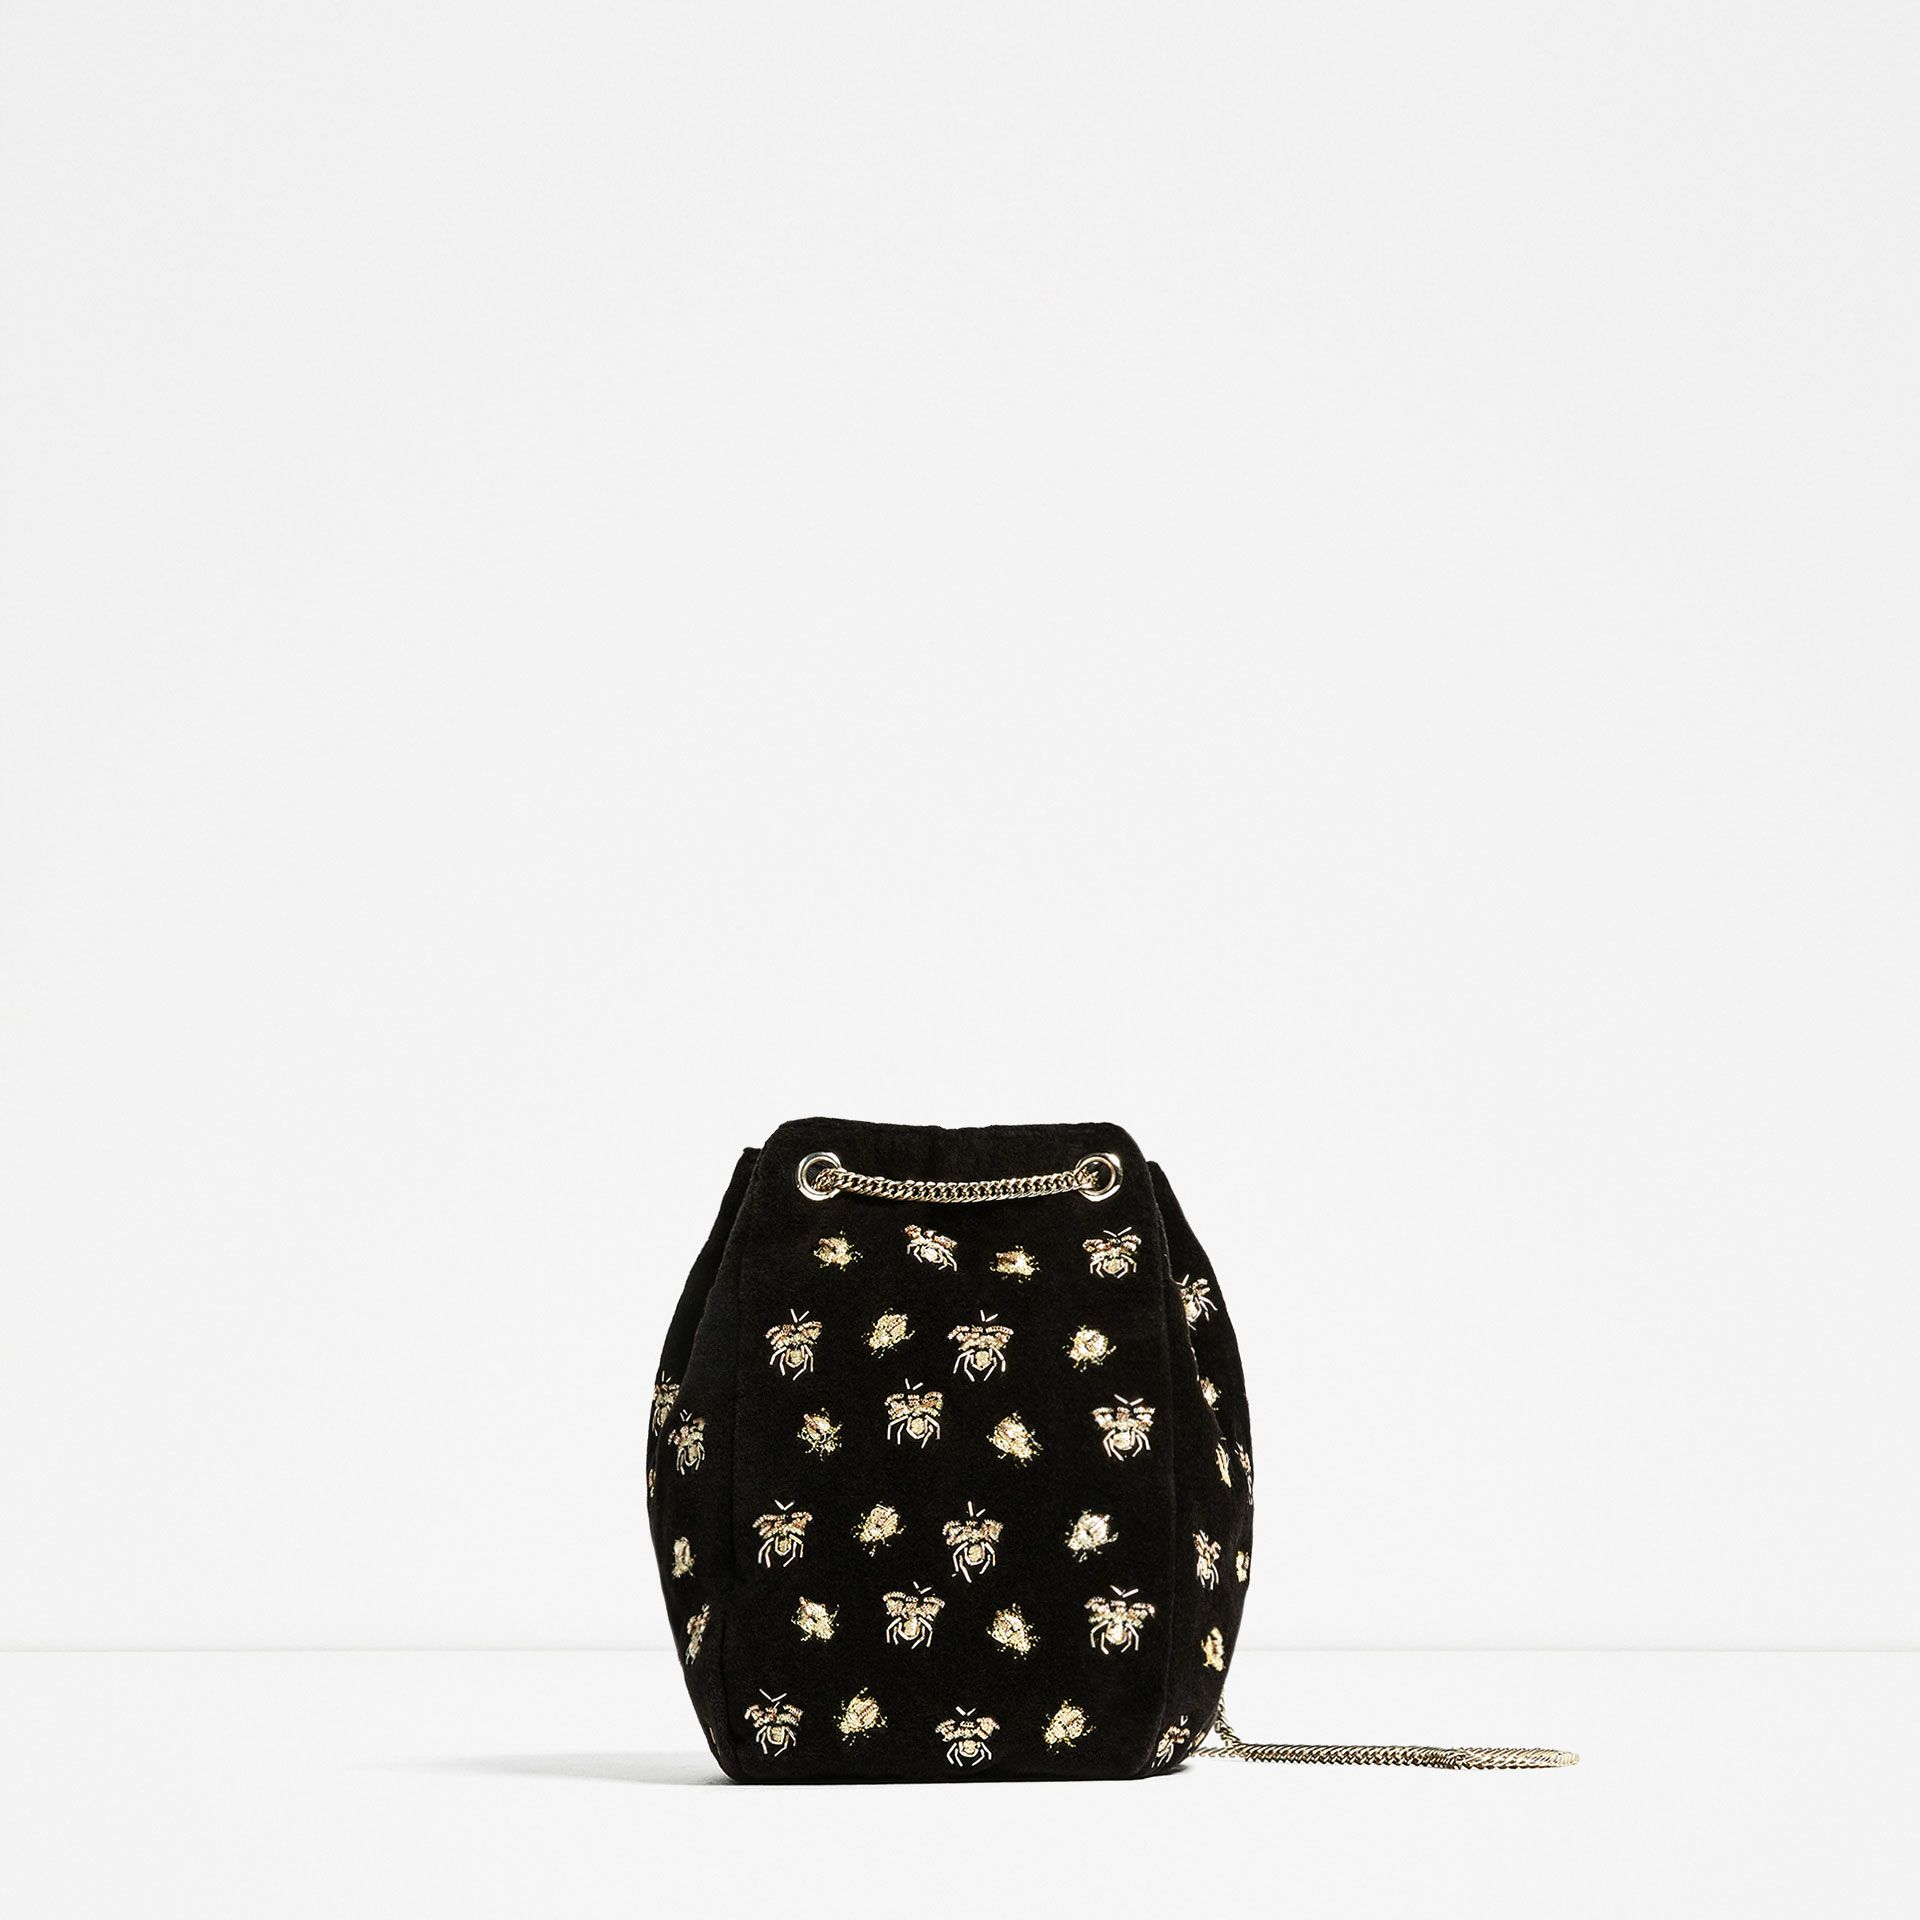 """<p>Bucket bags are perfect for when you just want to take ALL of your possessions out. They'll call you Mary Poppins (only your bag is cuter).</p><p><a href=""""http://www.zara.com/uk/en/woman/bags/view-all/embroidered-bees-bucket-bag-c734144p3712560.html"""" target=""""_blank"""">Embroidered bucket bag, £29.99, Zara</a></p>"""